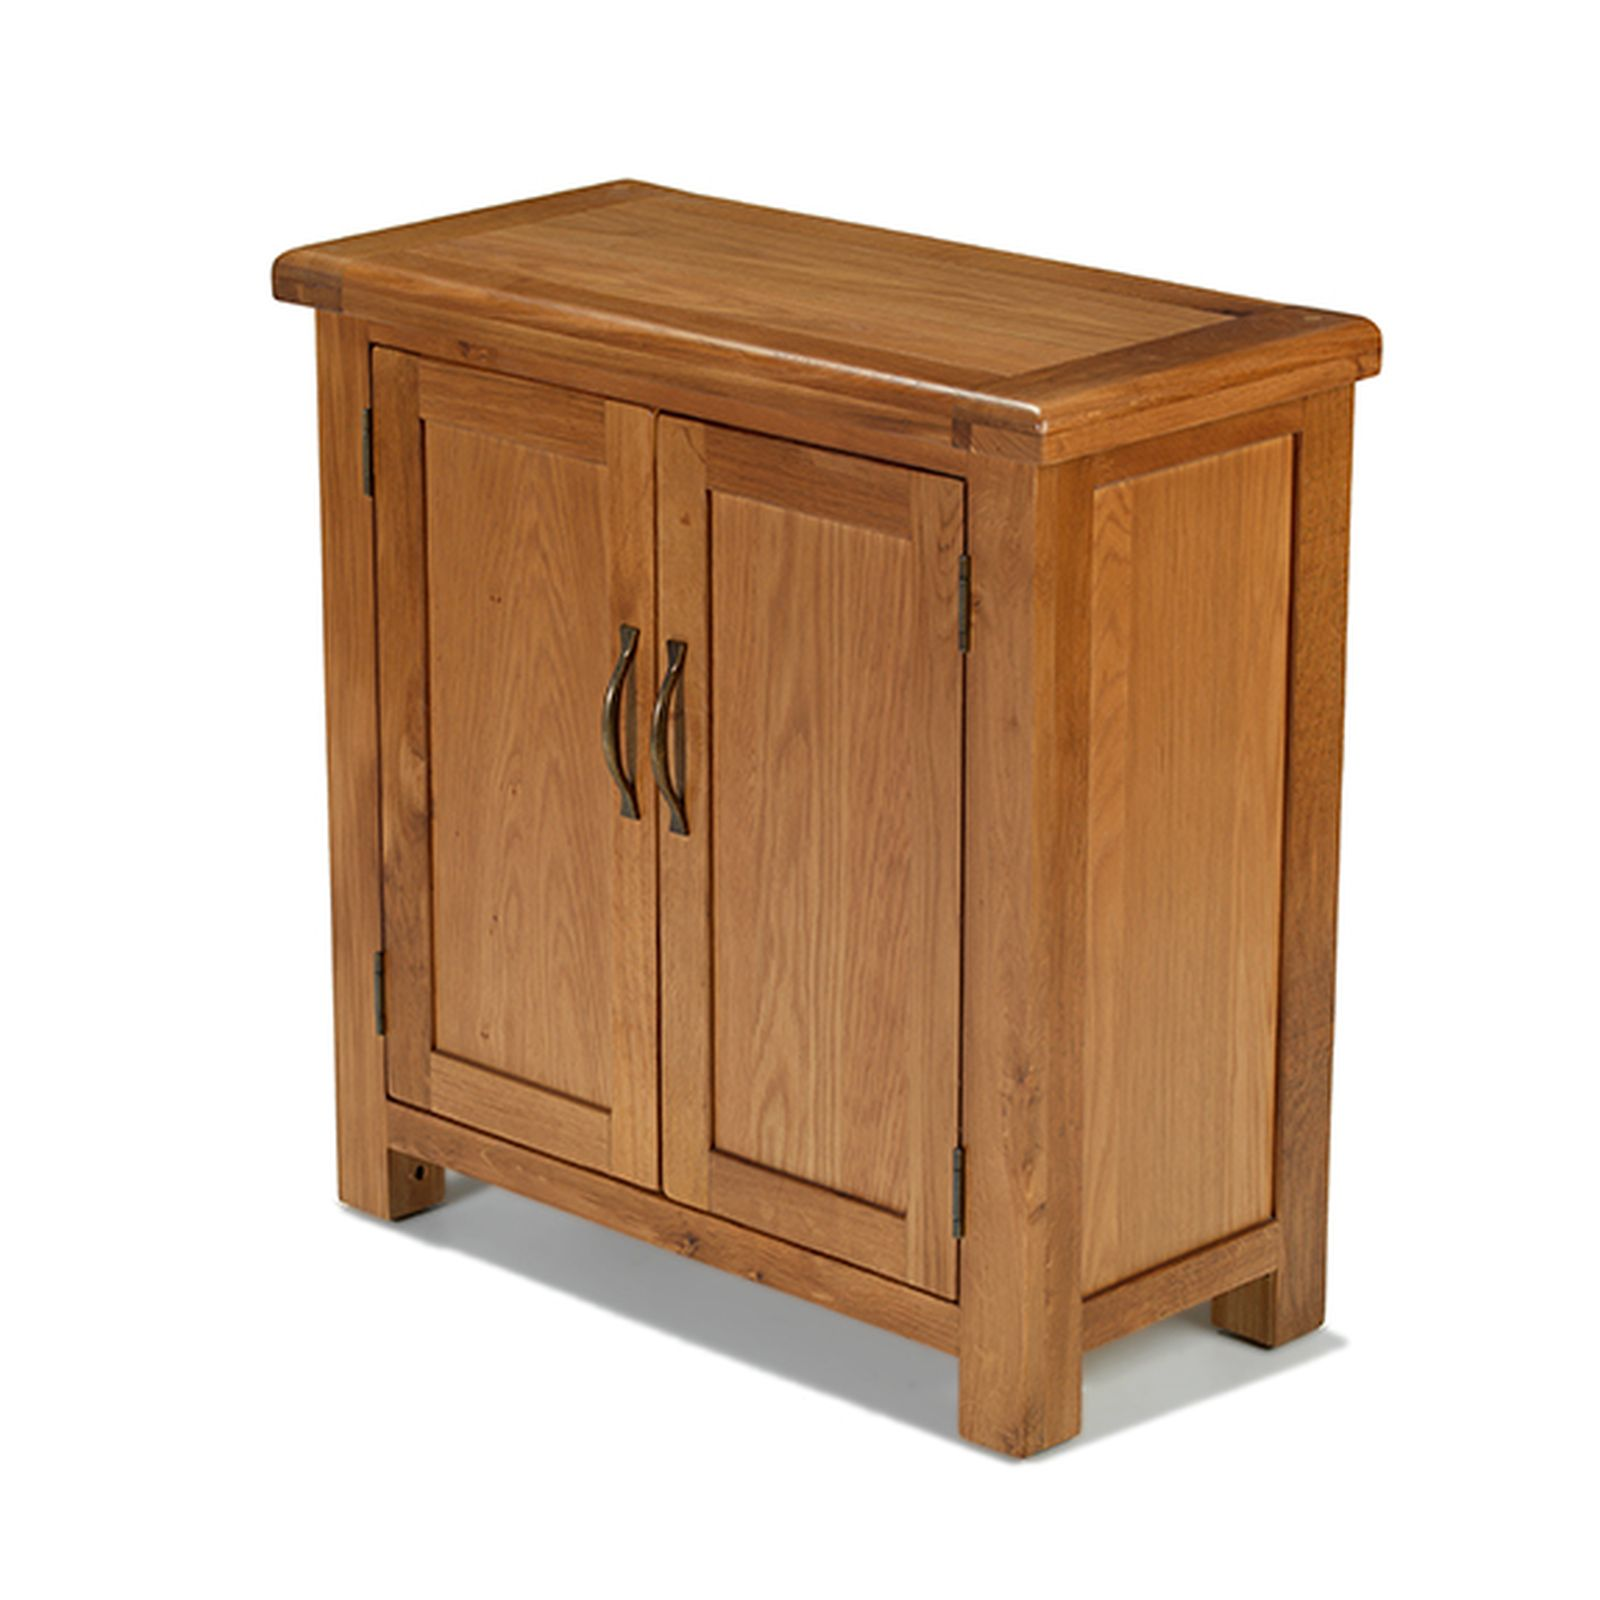 Rushden Solid Oak Furniture Small Petite Cabinet Storage. Living Room Ideas For Young Couples. The Living Room W Hotel Fort Lauderdale. Extra Large Living Room Sectionals. Pictures Of The Living Room. Living Room Valentine Decor. Living Room Paint For Black Furniture. Junk Gypsy Living Room Decor. Living Room Descriptions